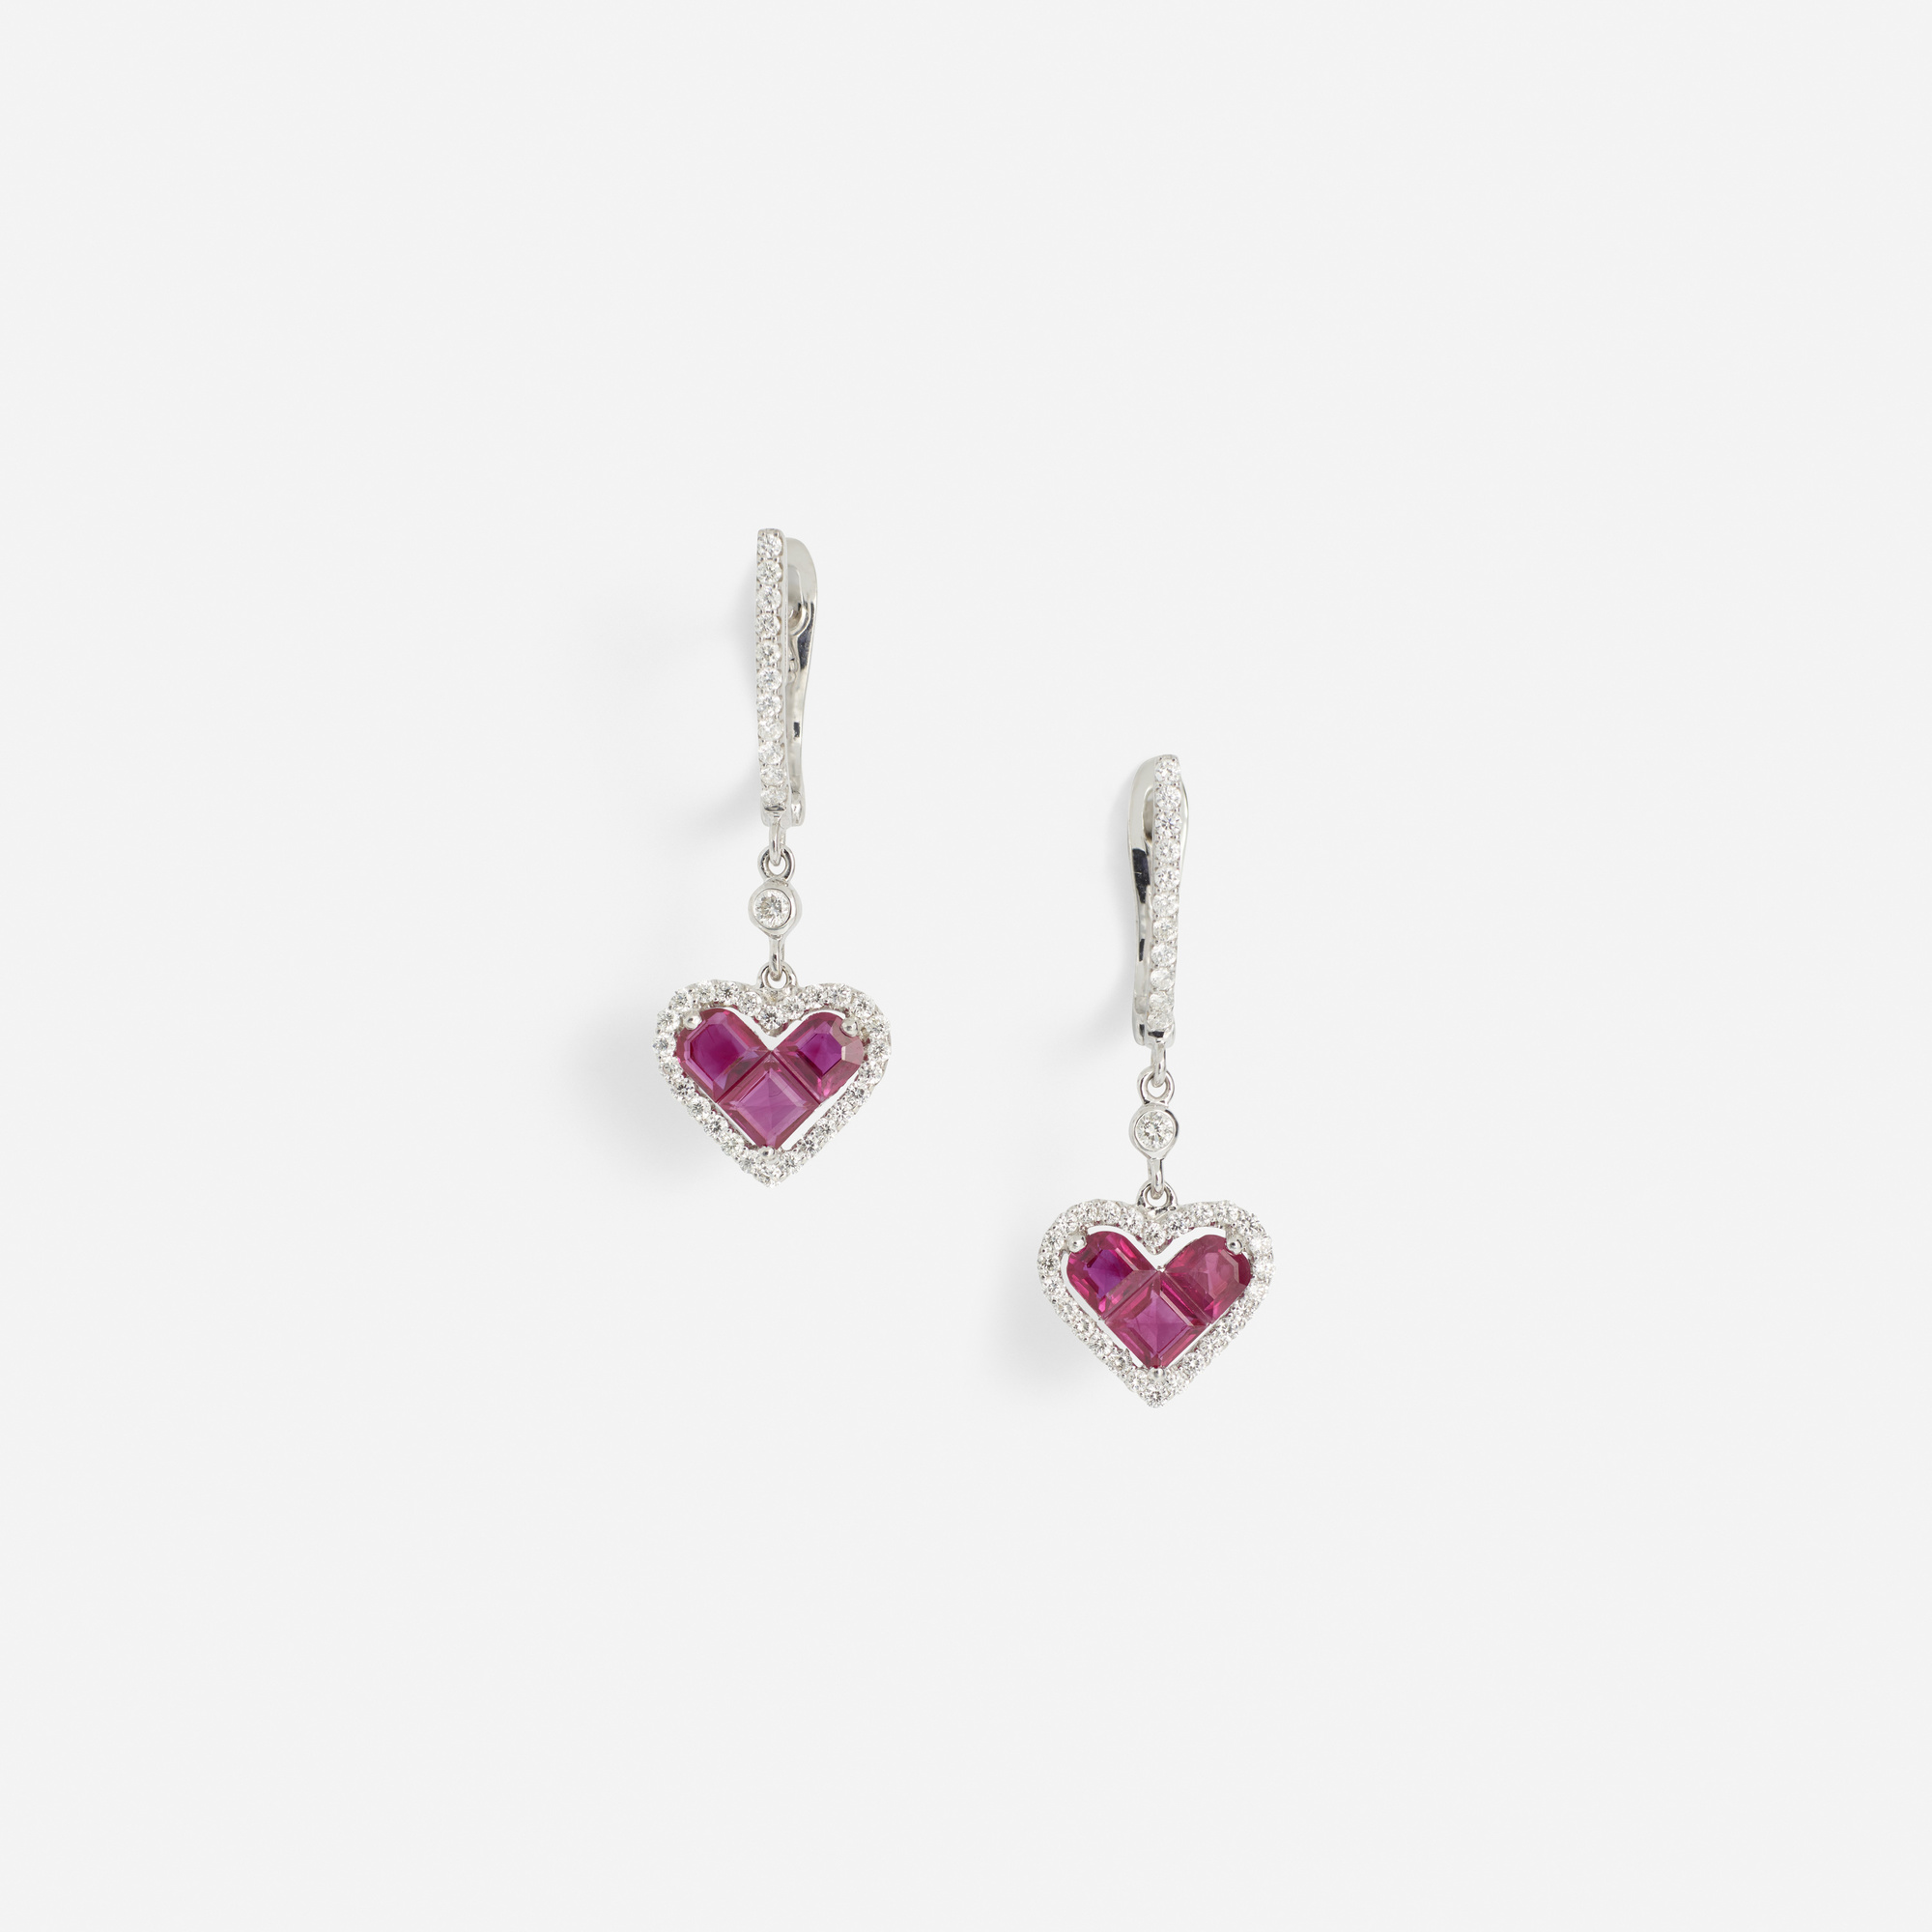 152:  / A pair of gold, diamond and ruby earrings (1 of 2)